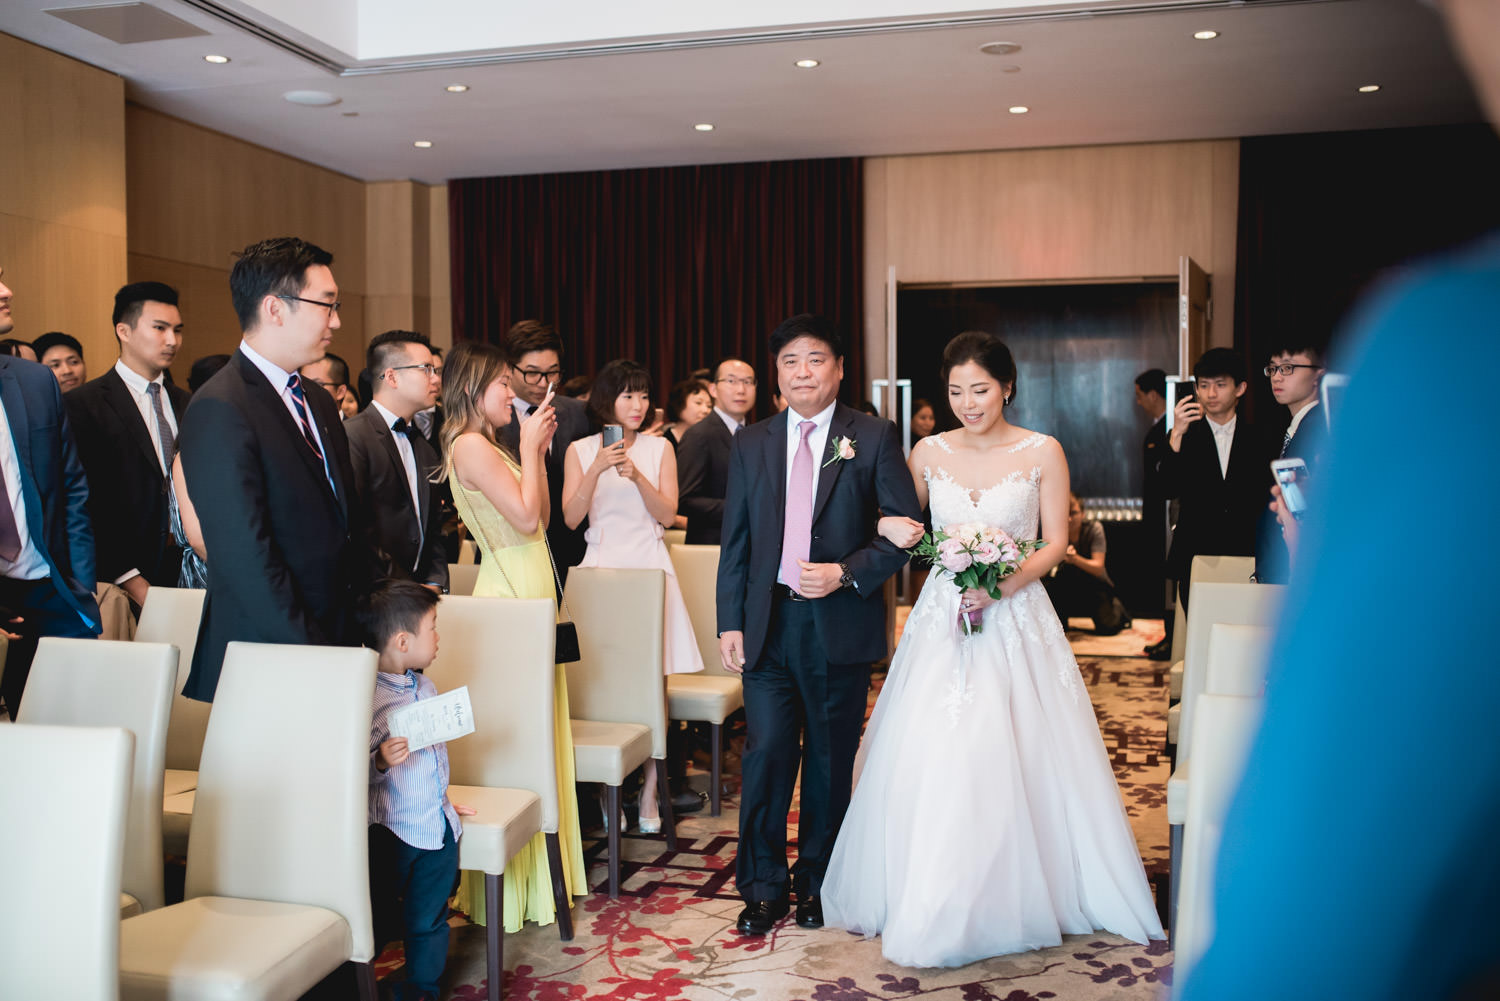 Father walks bride down the aisle for the ceremony at Shangri-La Hotel in Toronto